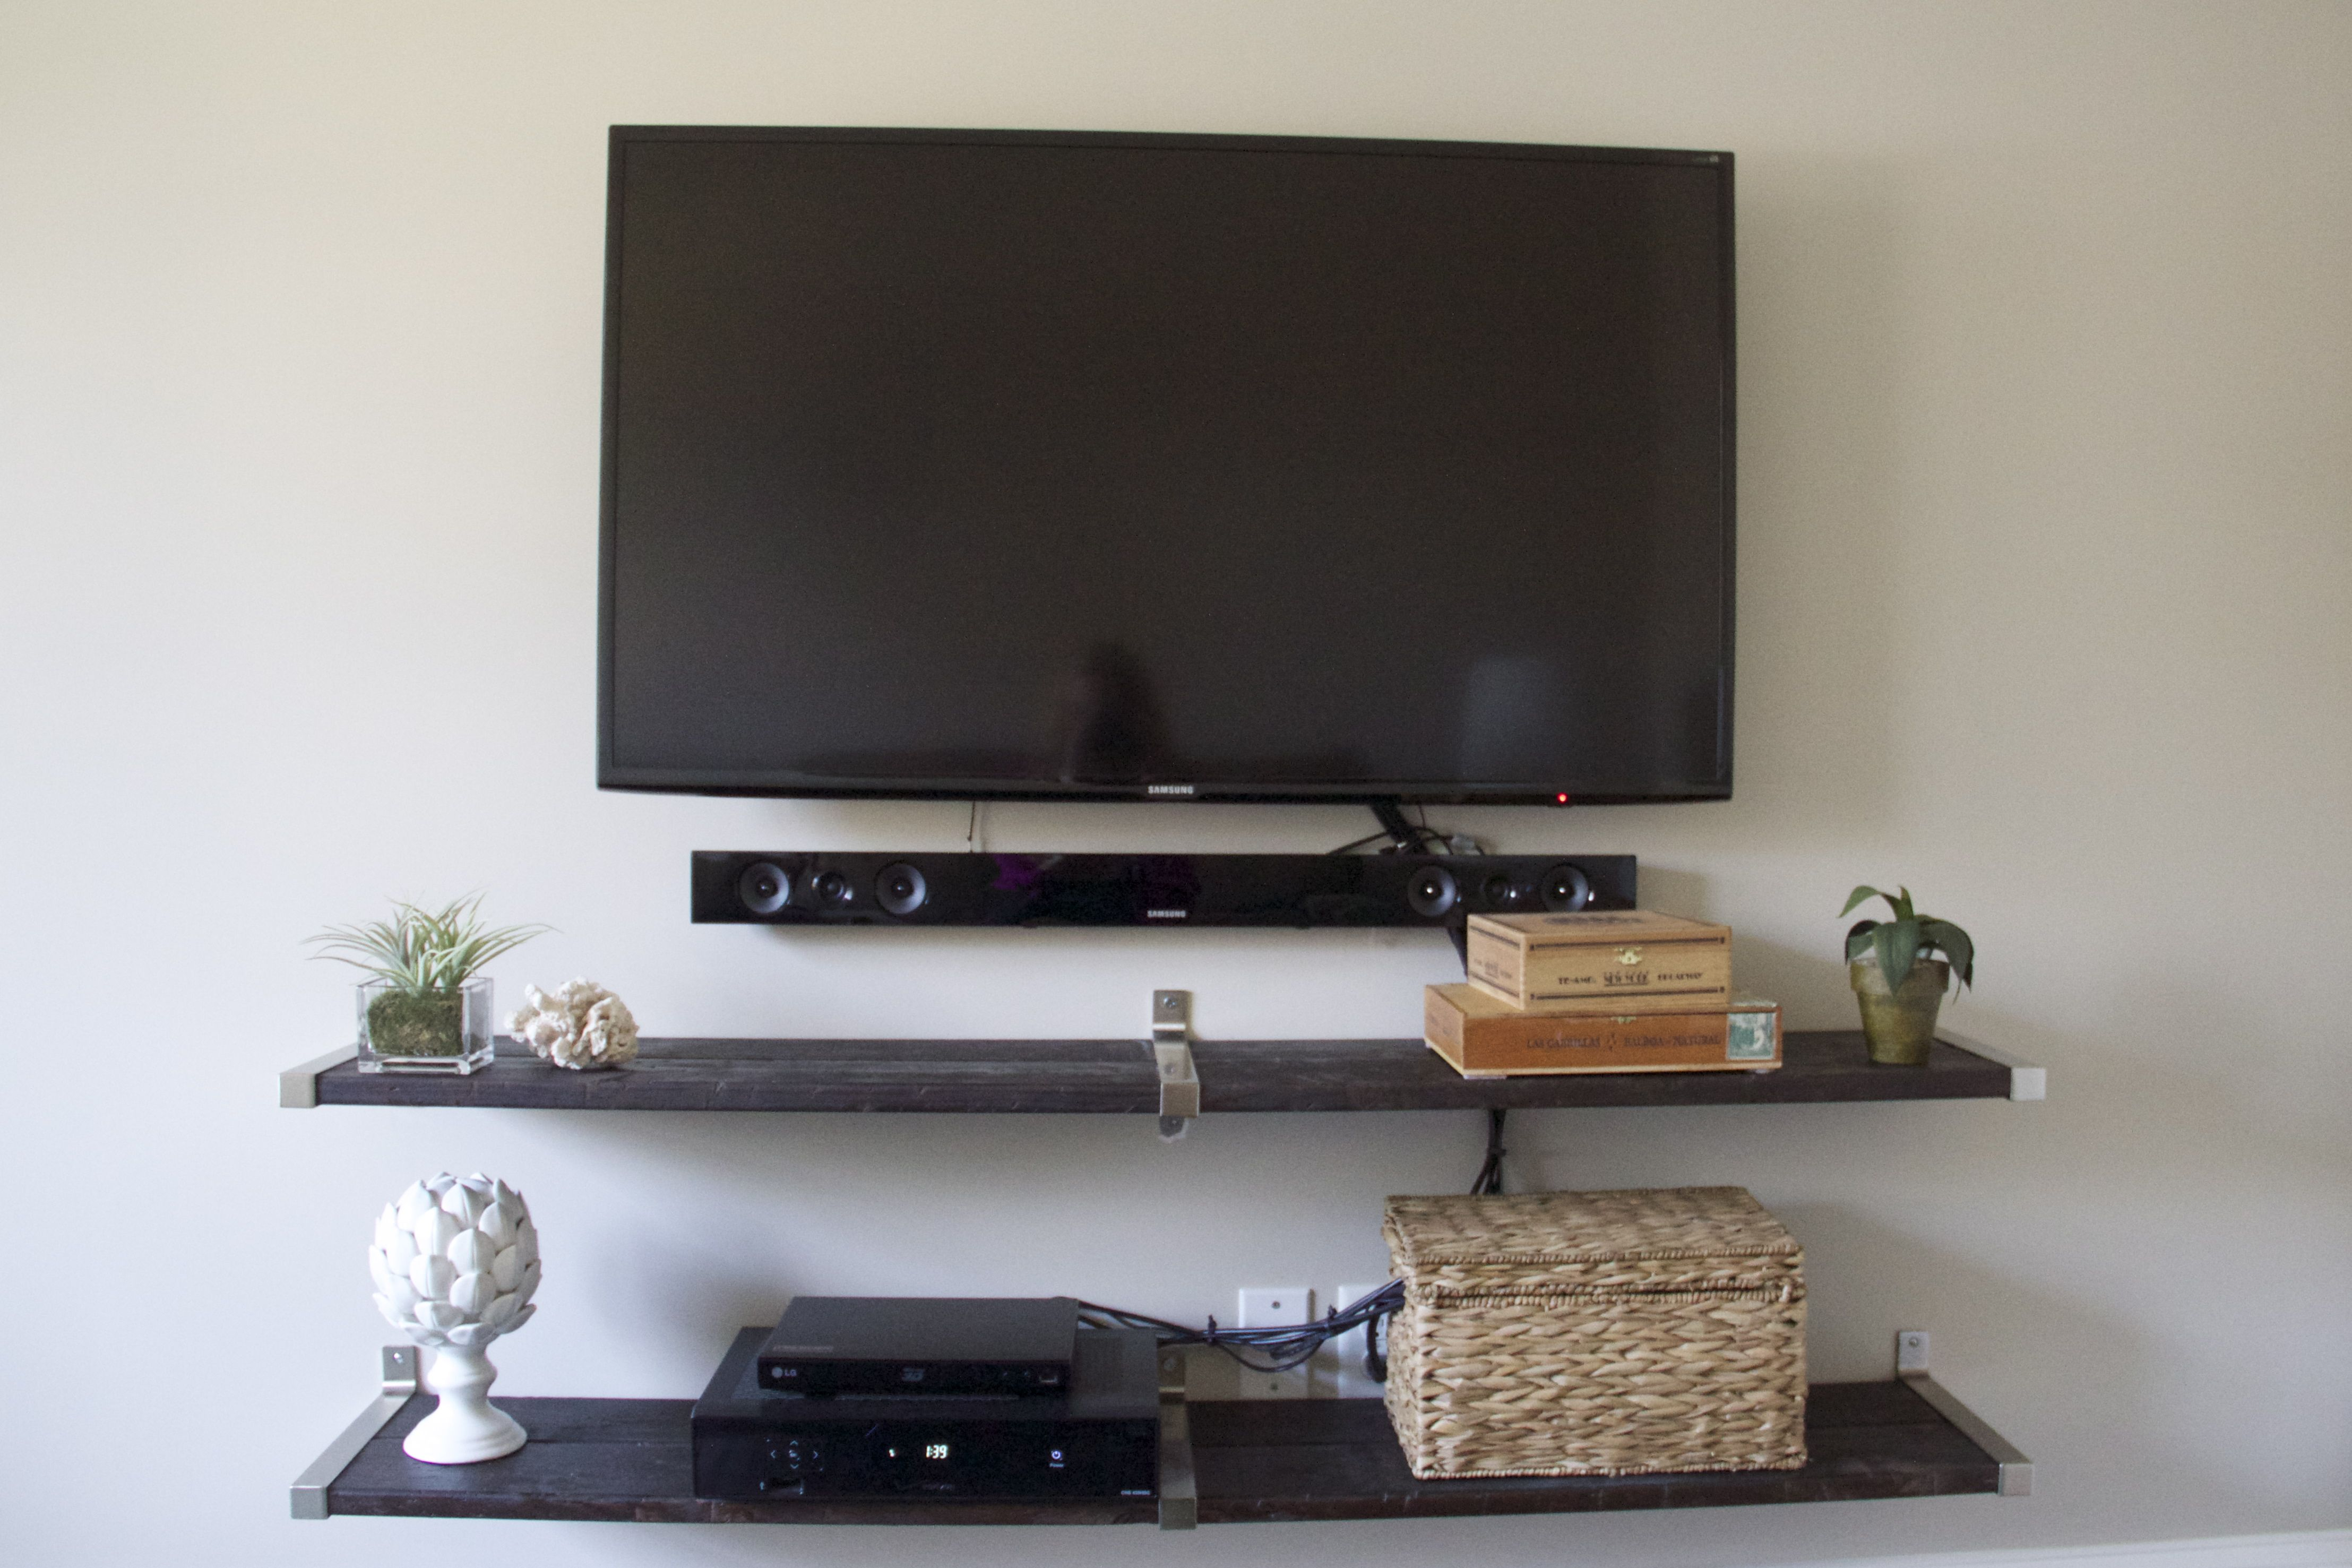 TV Wall Using IKEA EKBY Shelf End Brackets And Connecting